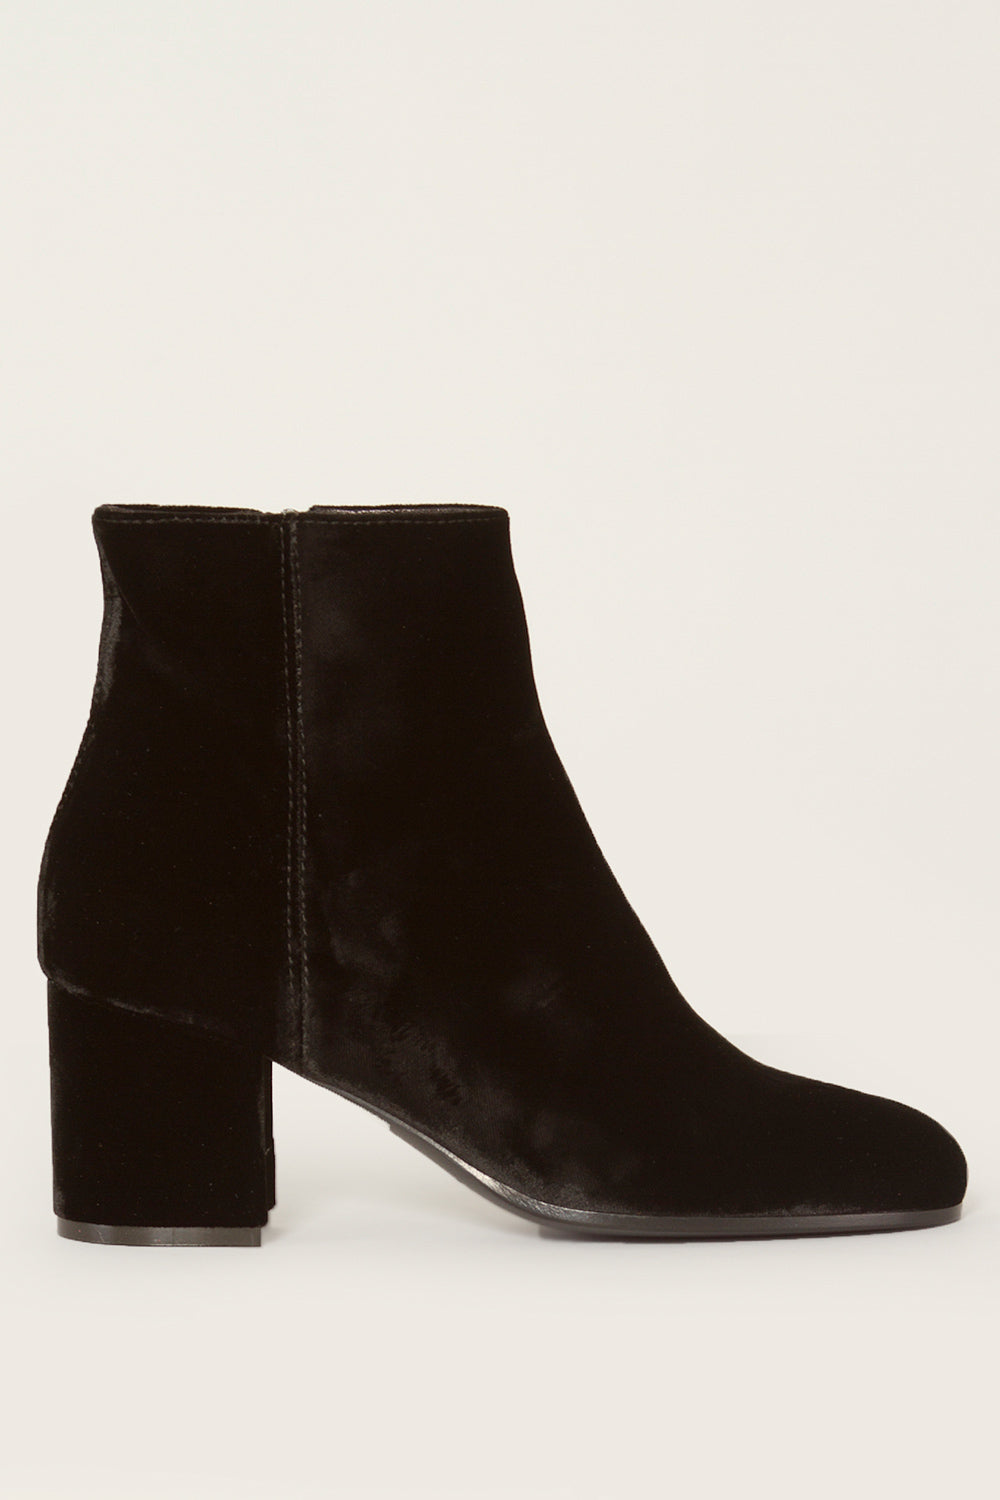 MADISON ET CIEMIA VELVET BOOTIES27515